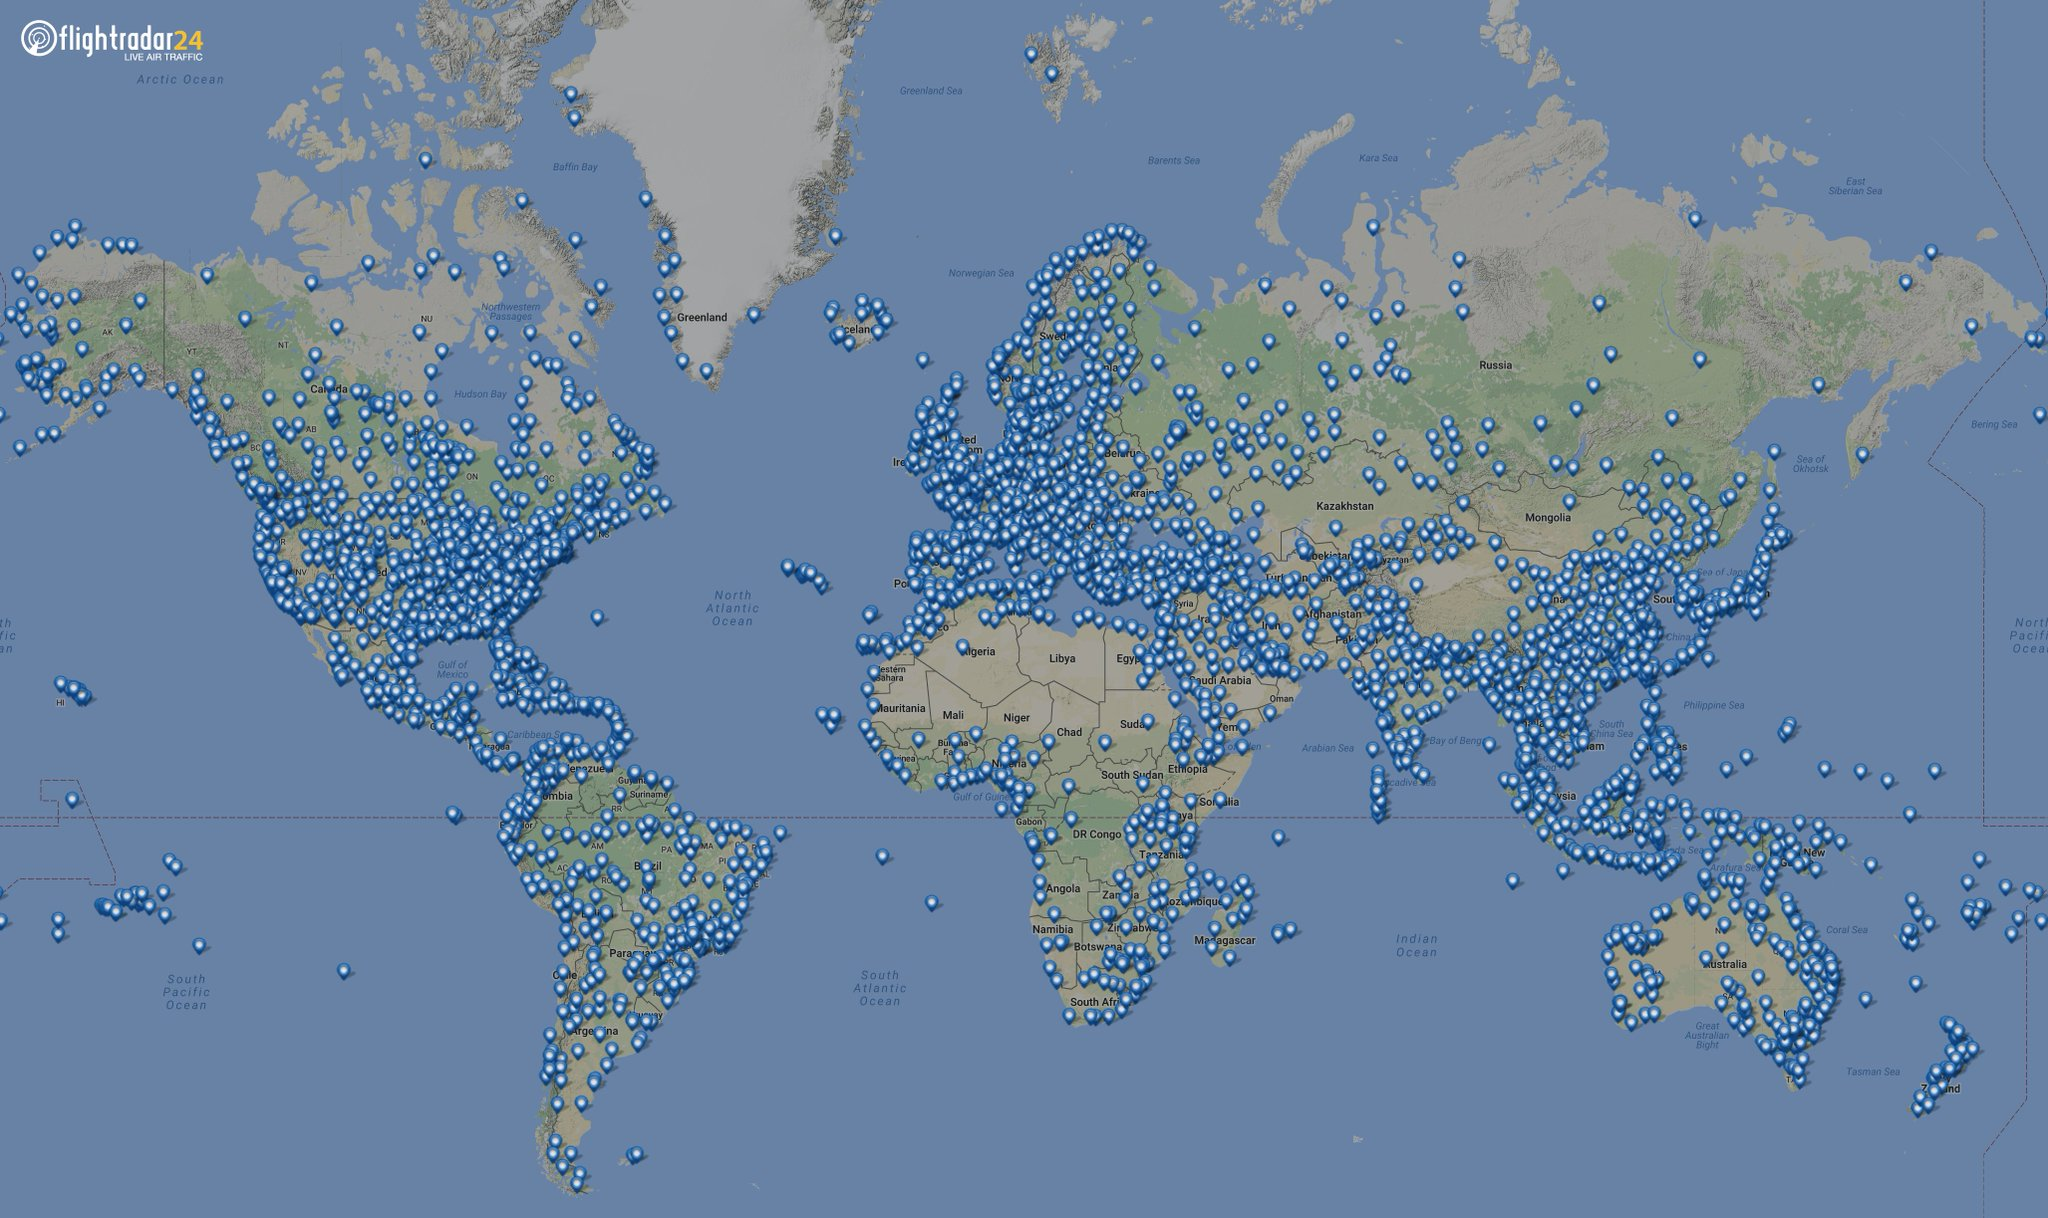 Click on any of the pictures to see the airport diagram - Flightradar24 On Twitter Over The Weekend We Added 100 Airports To Our Database With 3500 Airport Pins Now On The Map Click Any Pin For Airport Info